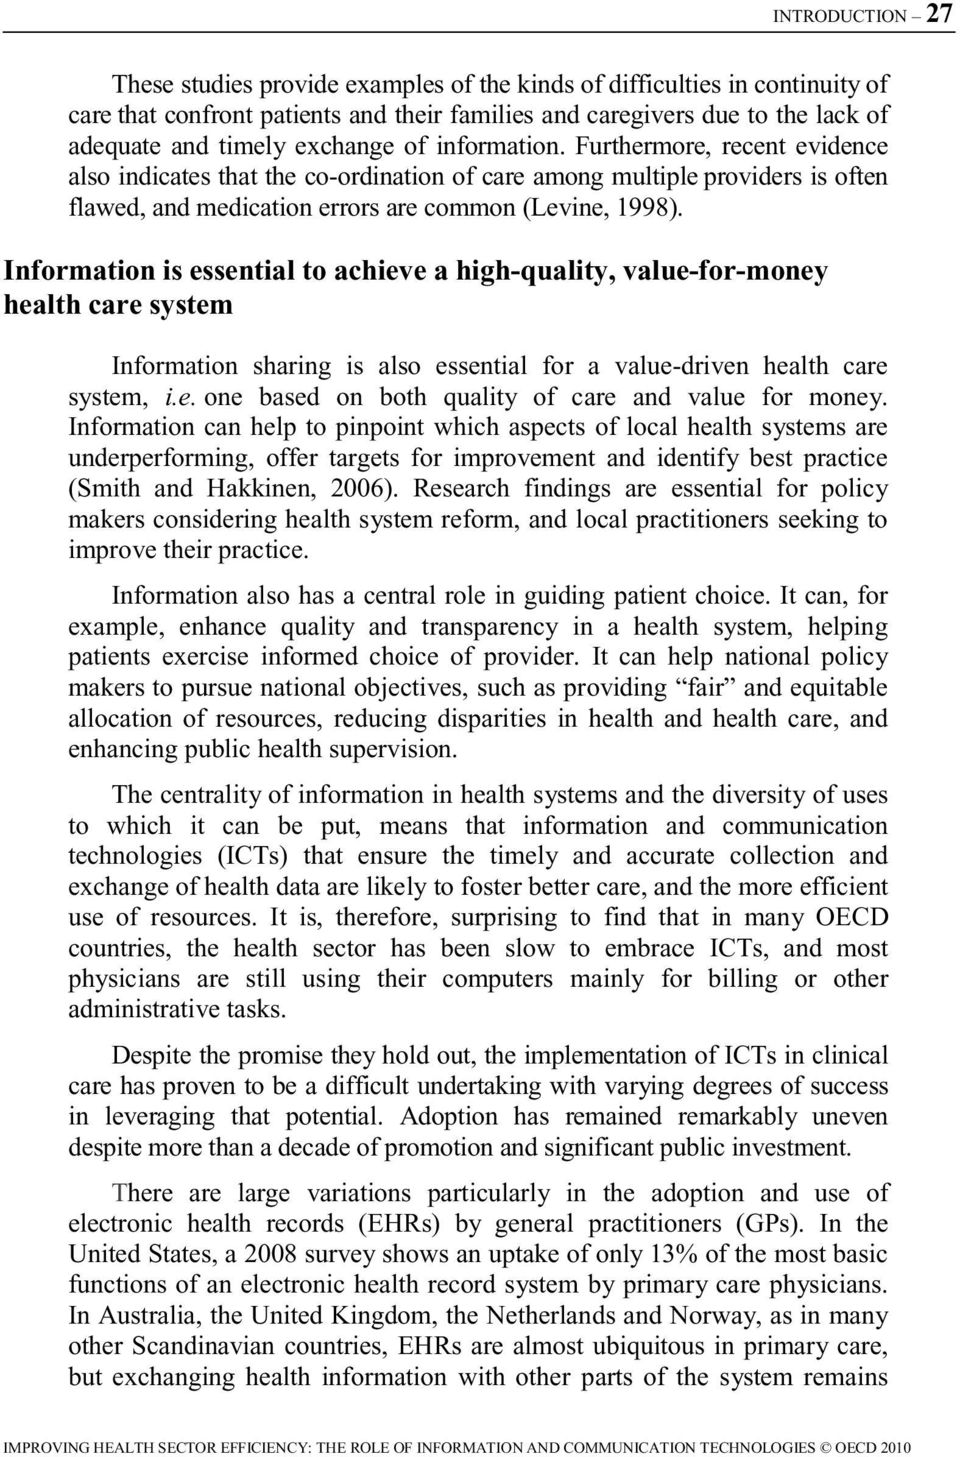 Information is essential to achieve a high-quality, value-for-money health care system Information sharing is also essential for a value-driven health care system, i.e. one based on both quality of care and value for money.